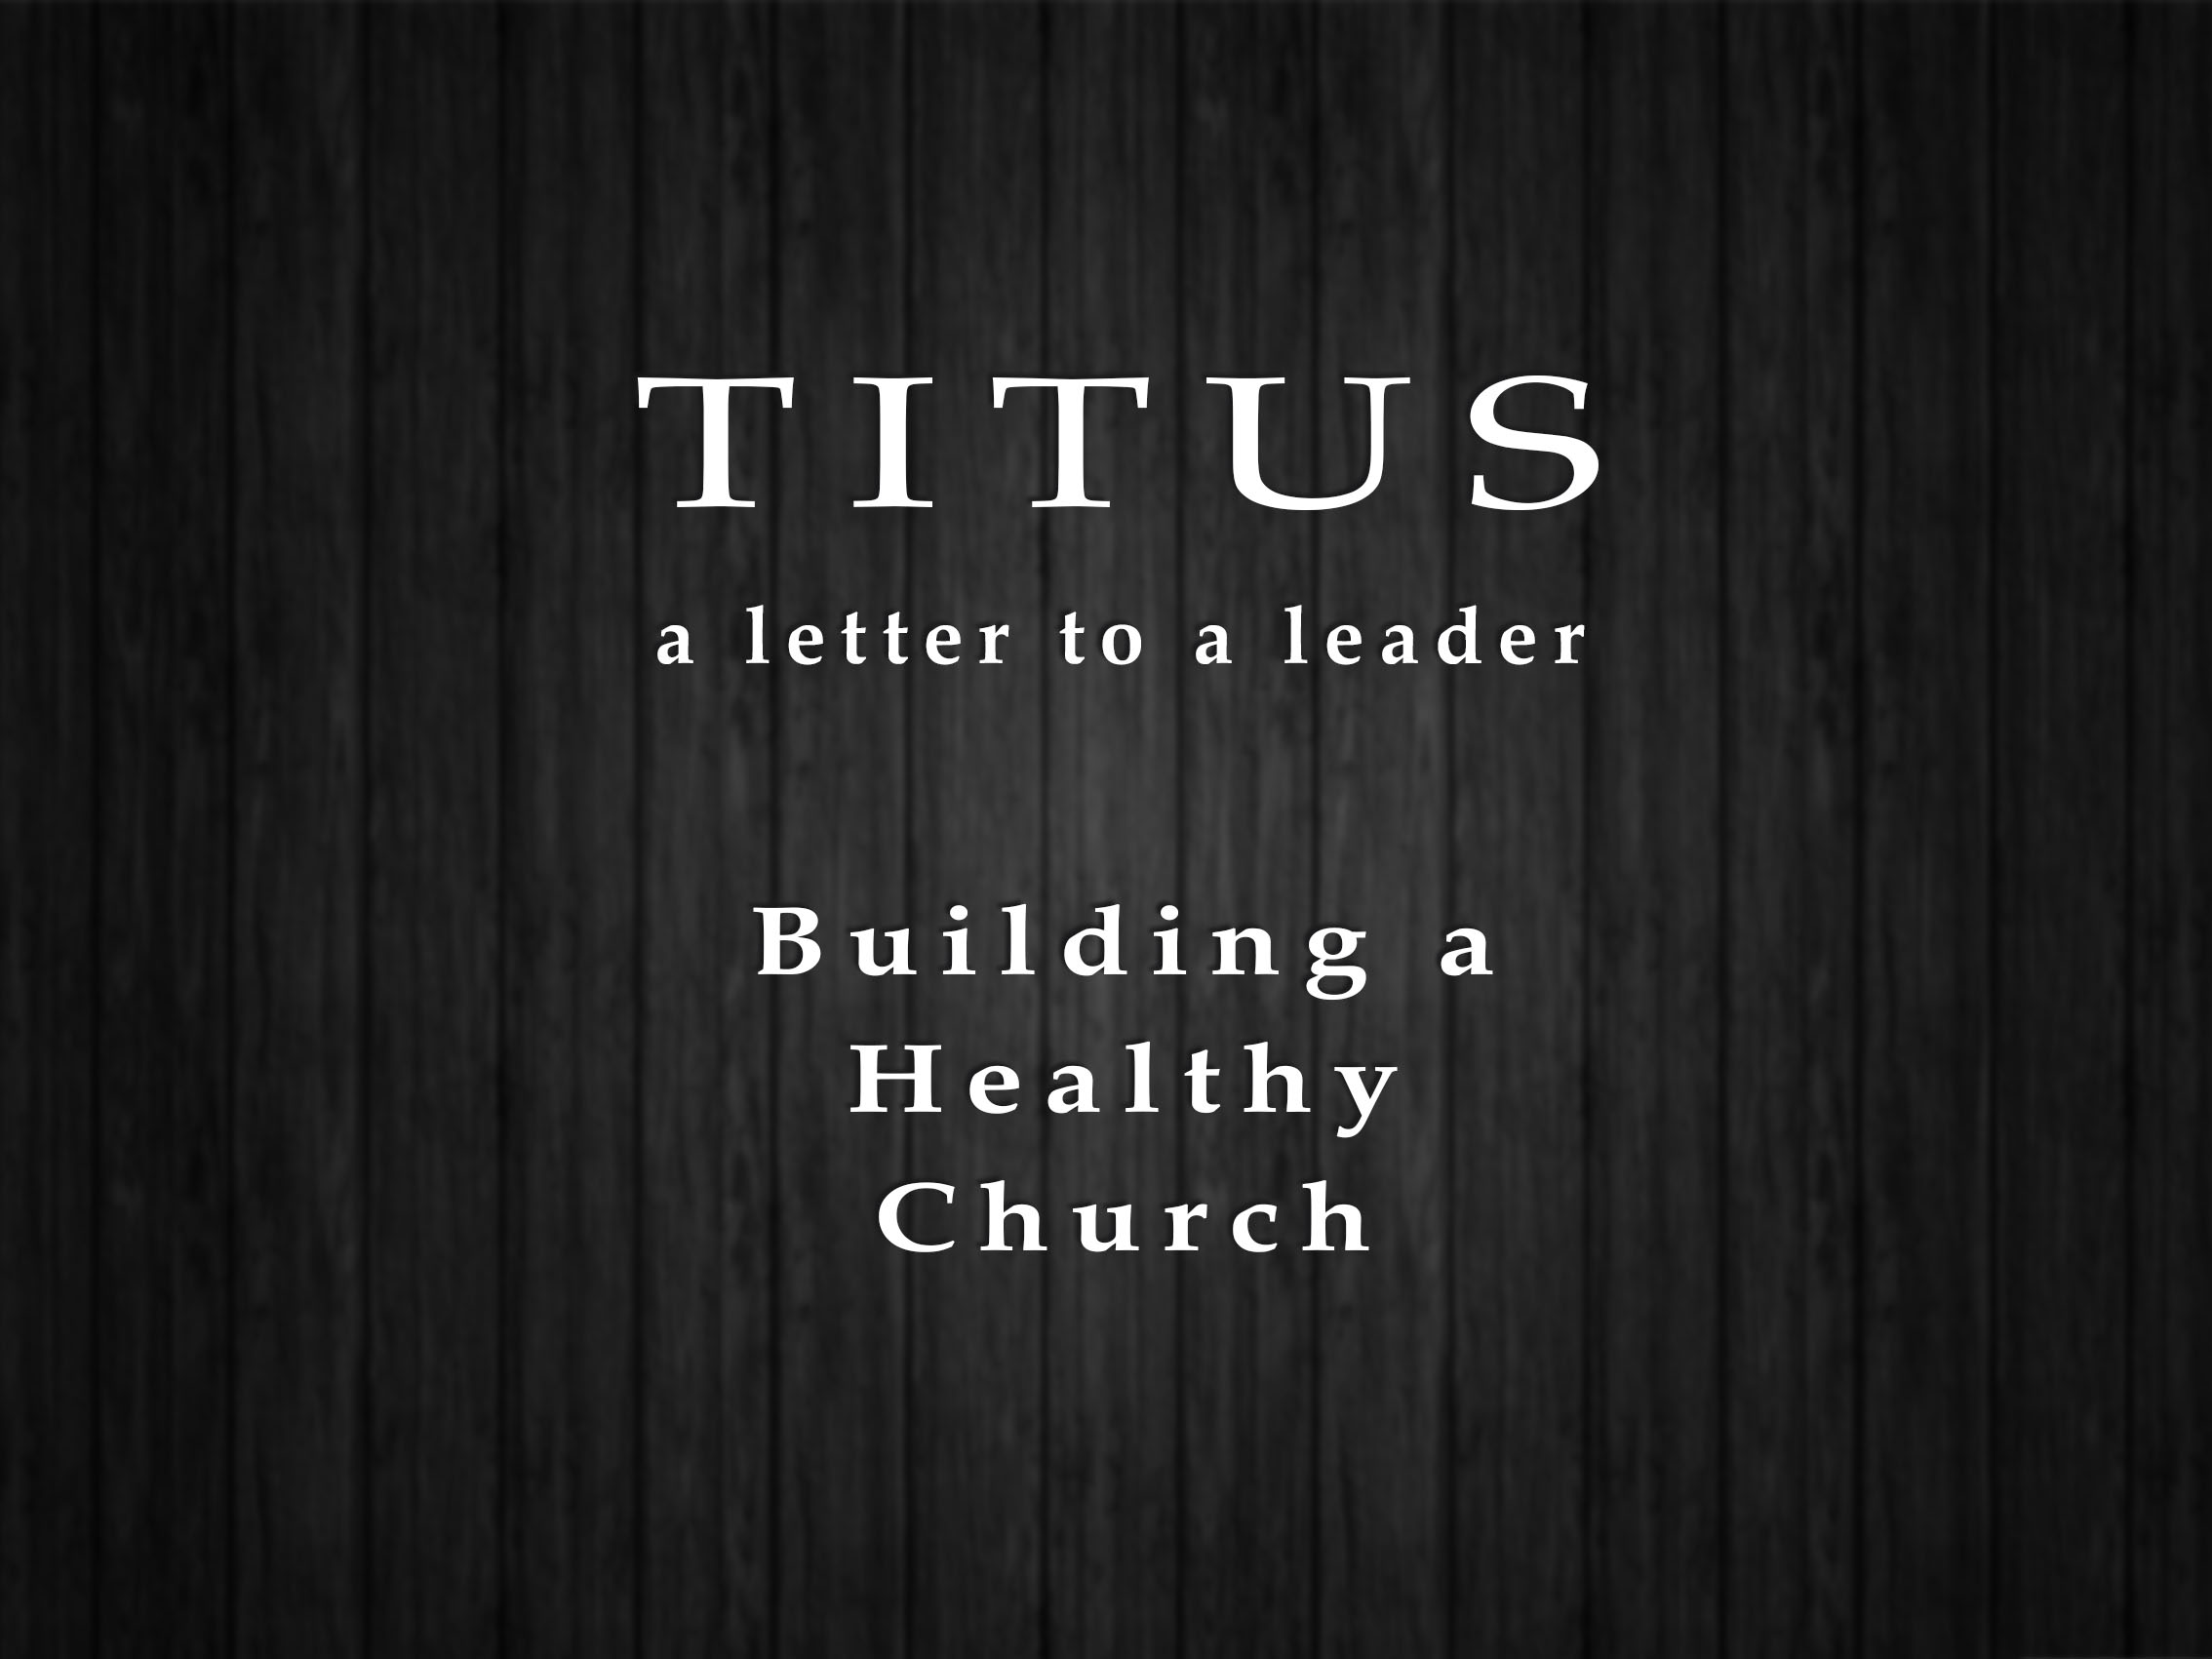 Titus - A Letter to Leader | Building a Healthy Church